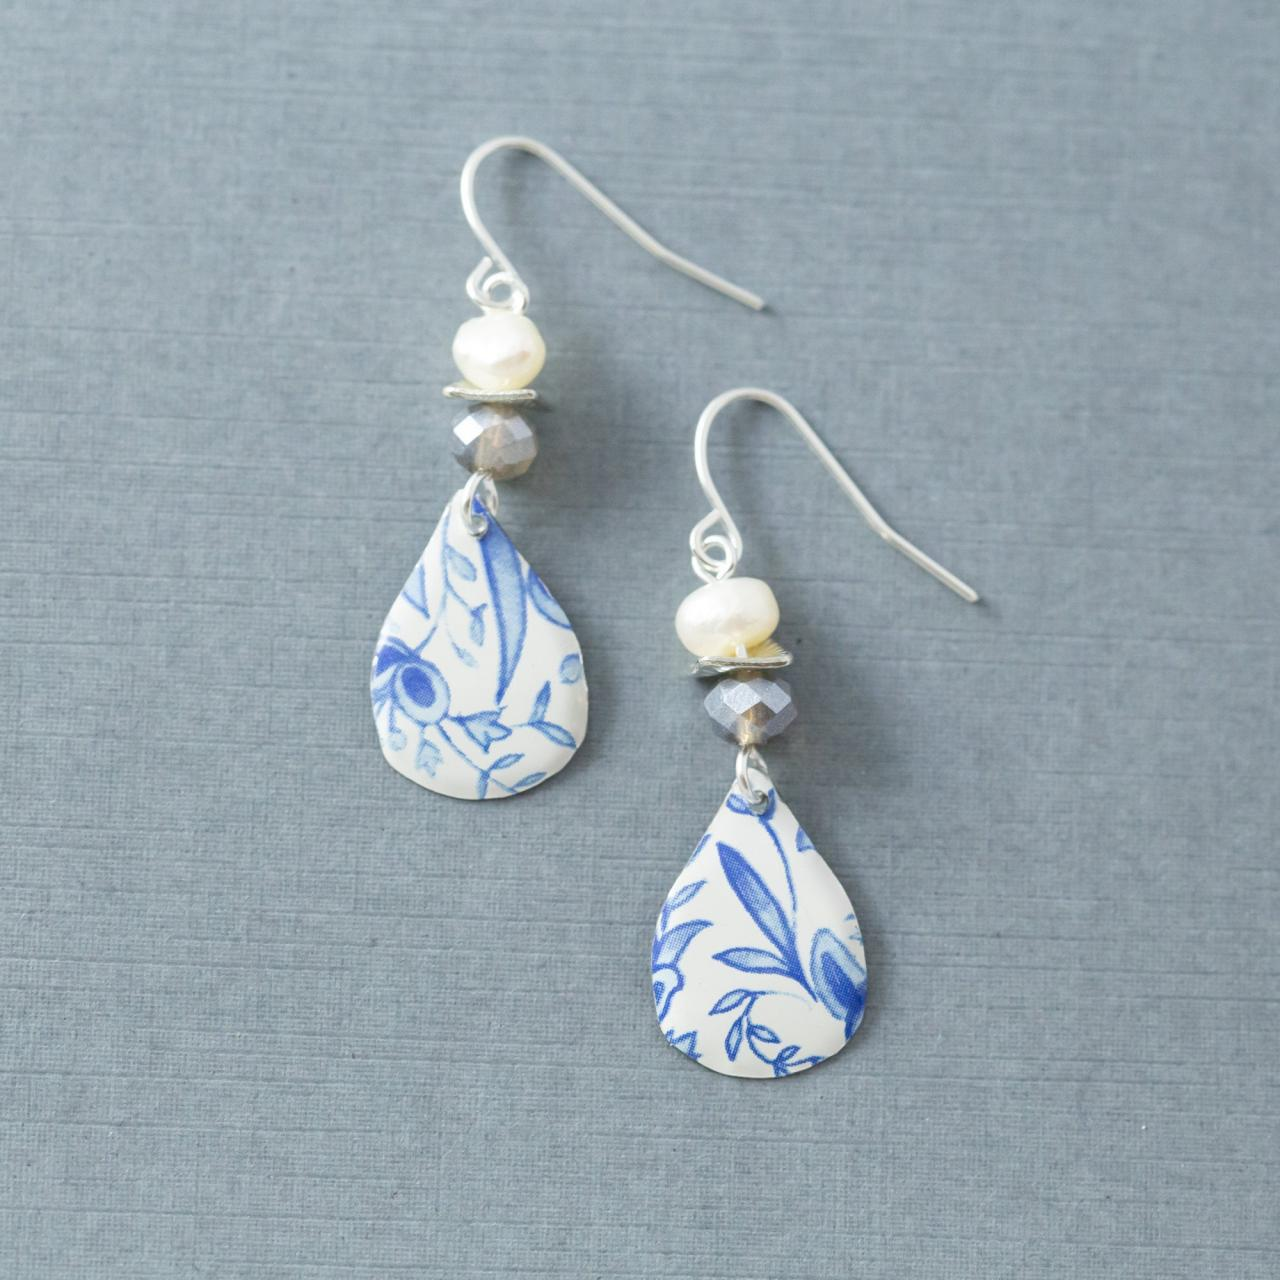 White and Blue Delft Teardrop Earrings with Silver Glass Beads & Freshwater Pearls, Dangle Earrings, Tin Jewelry